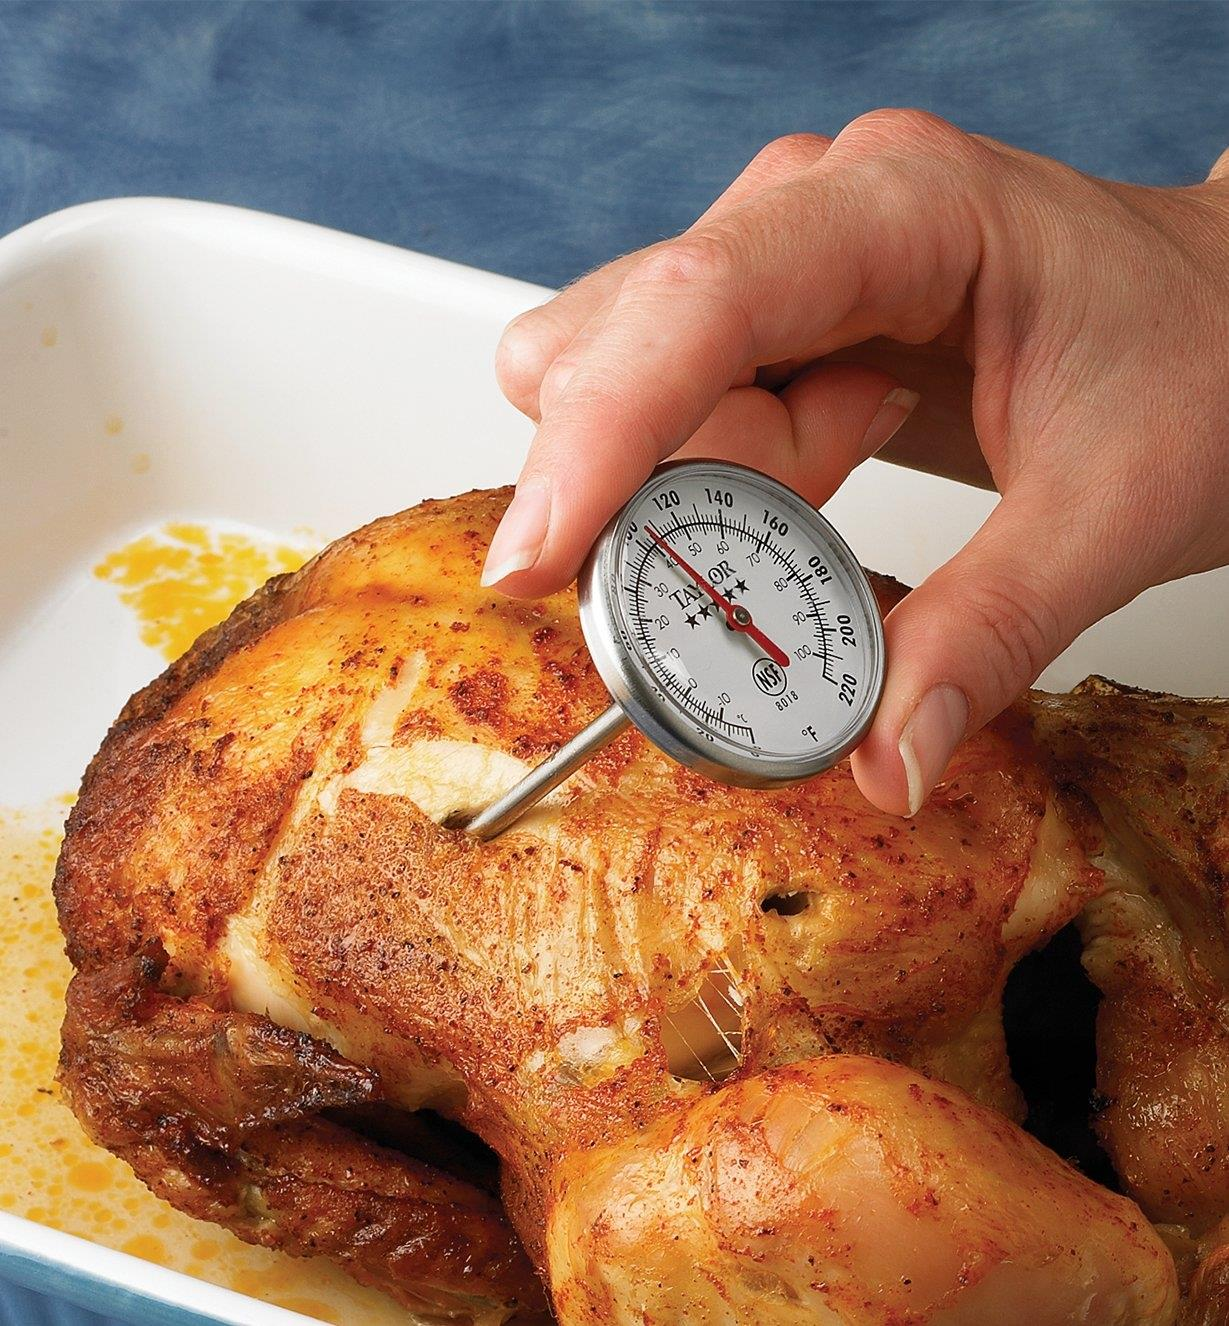 FT102 - Instant-Read Thermometer